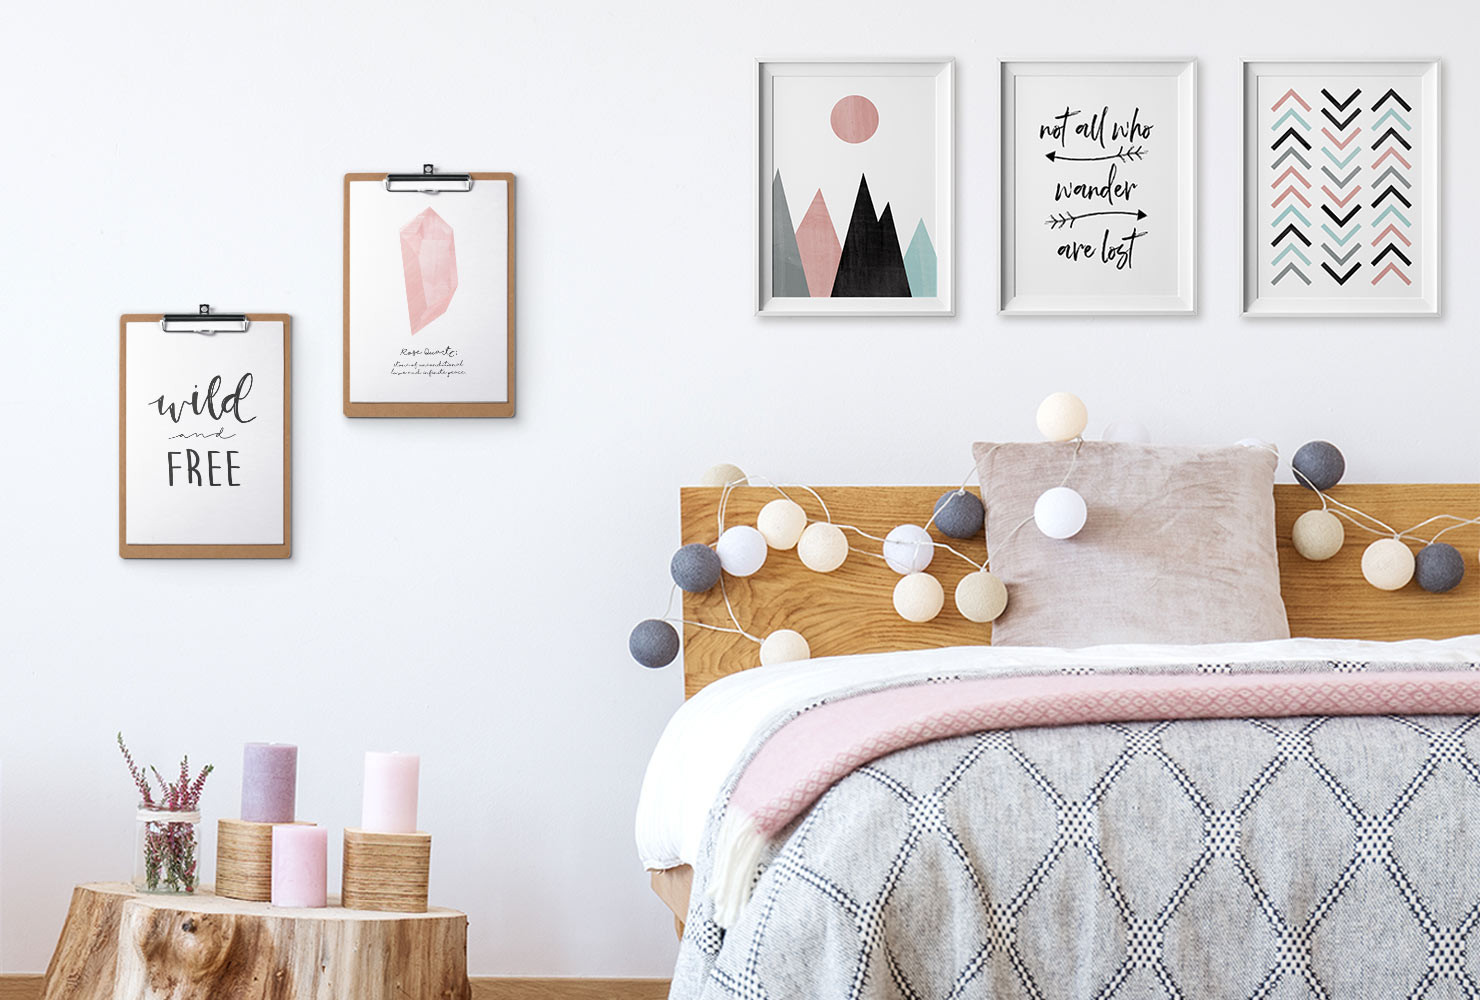 Best ideas about Bedroom Wall Decor . Save or Pin 24 DIY Bedroom Decor Ideas To Inspire You With Printables Now.